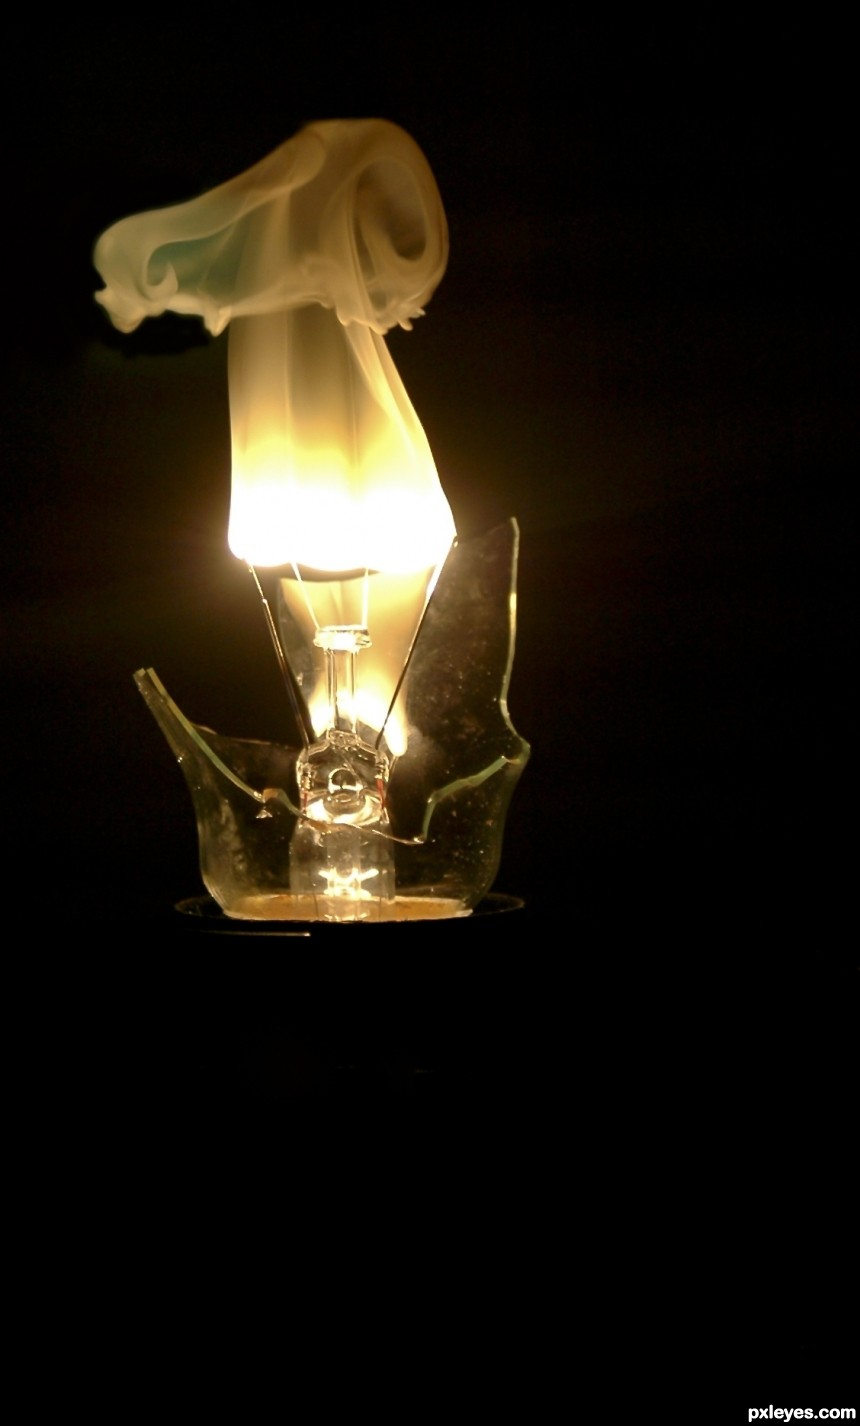 Light Bulb Smoke photoshop picture)